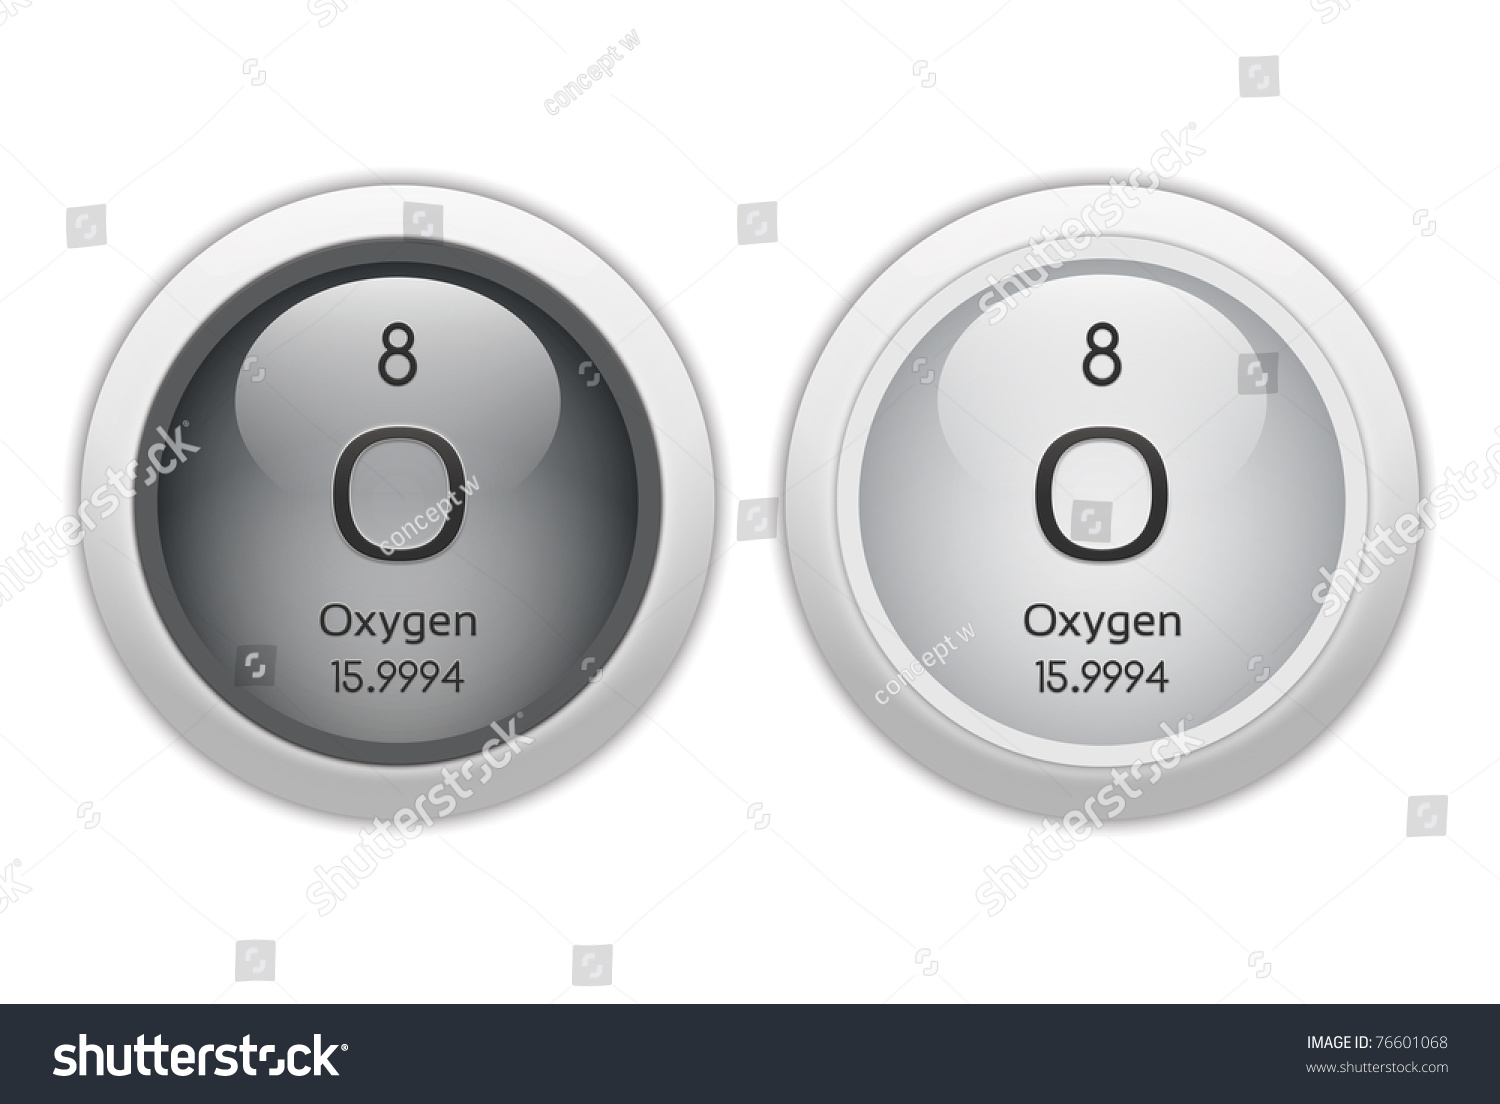 Oxygen web buttons chemical element atomic stock illustration oxygen web buttons chemical element with atomic number 8 it is represented by buycottarizona